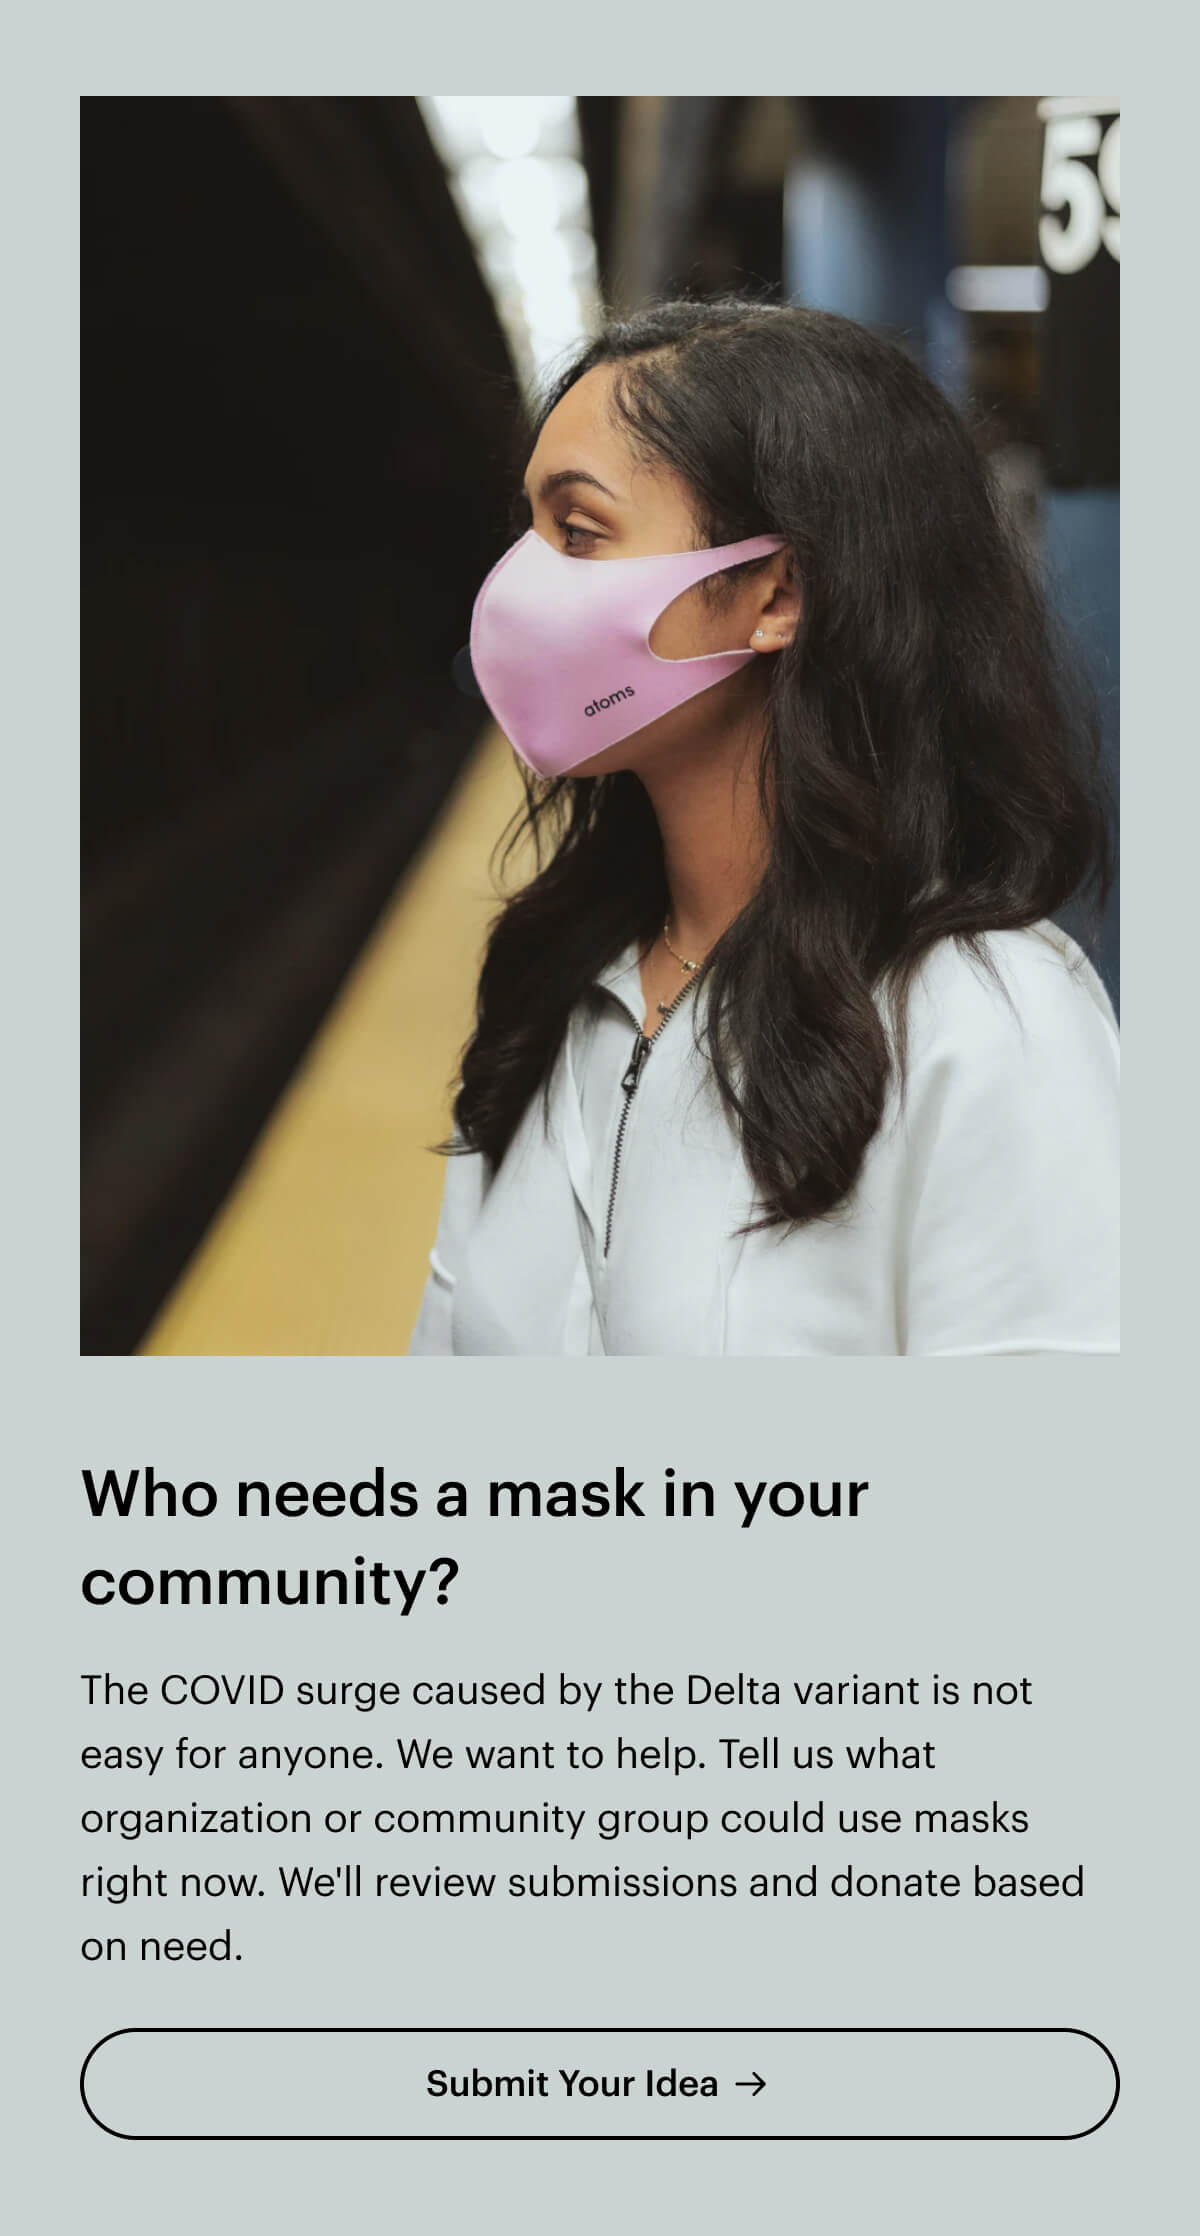 Who needs a mask in your community? The COVID surge the Delta variant is not easy for anyone. We want to help. Tell us what organization or community group could use masks right now. We'll review submissions and donate based on need.